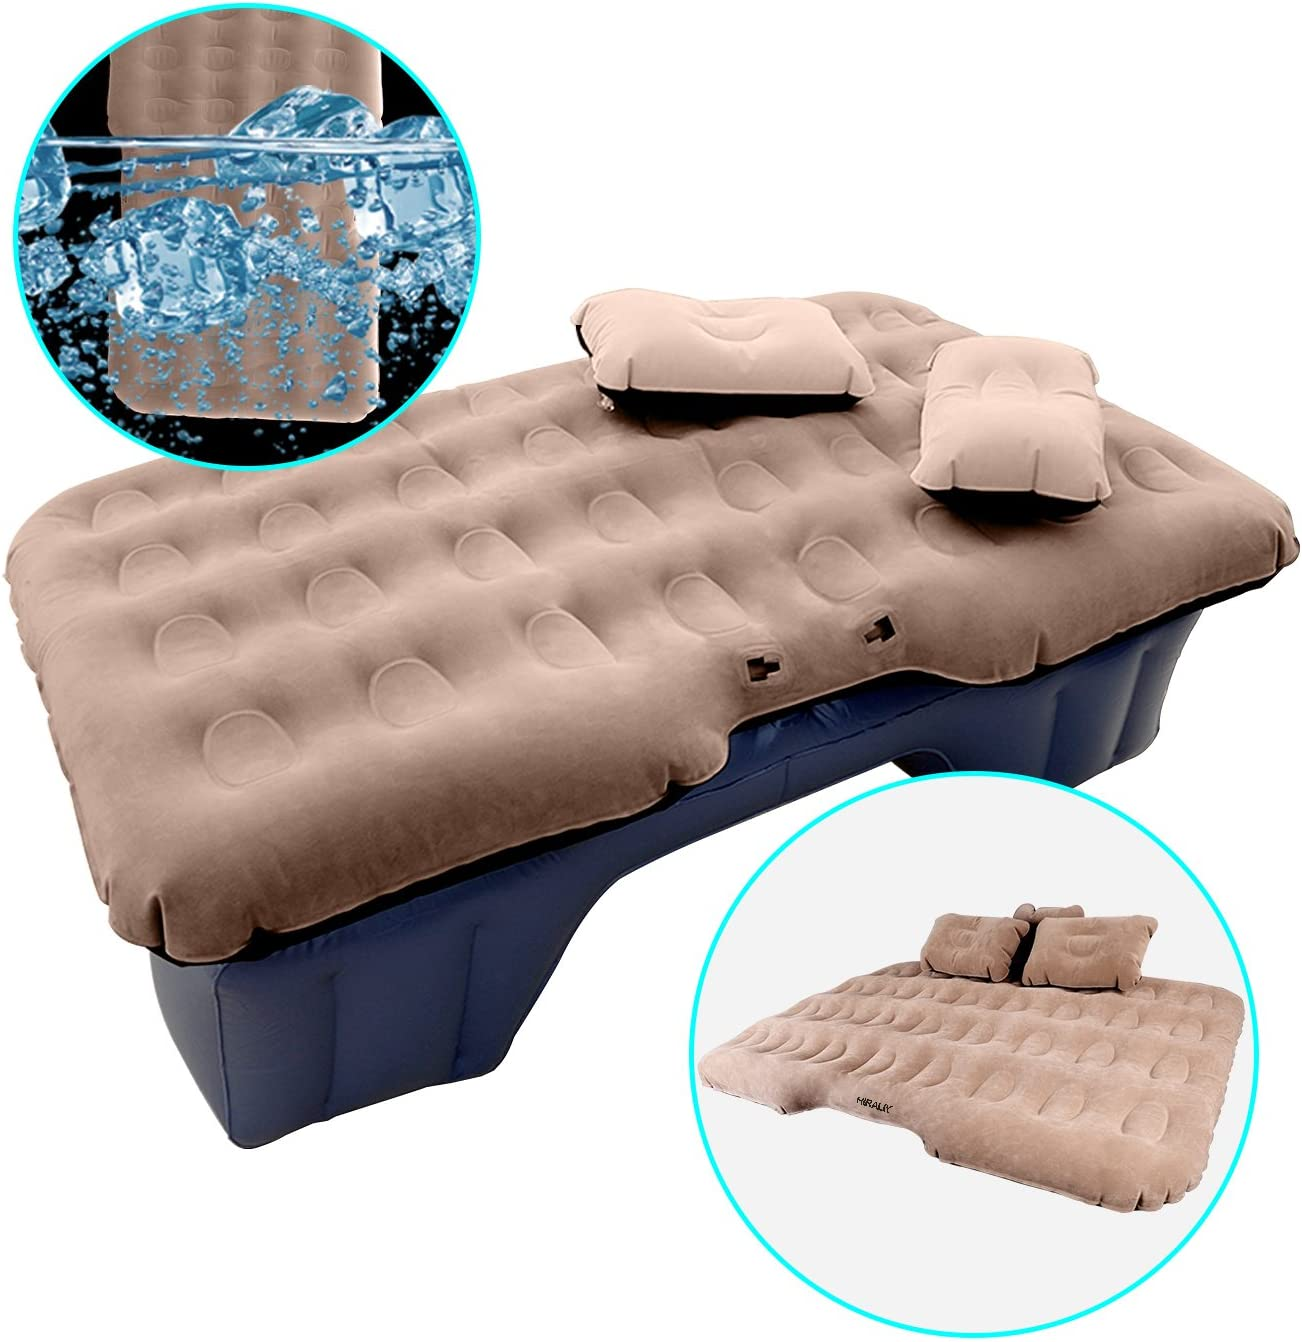 HIRALIY Car Air Mattress